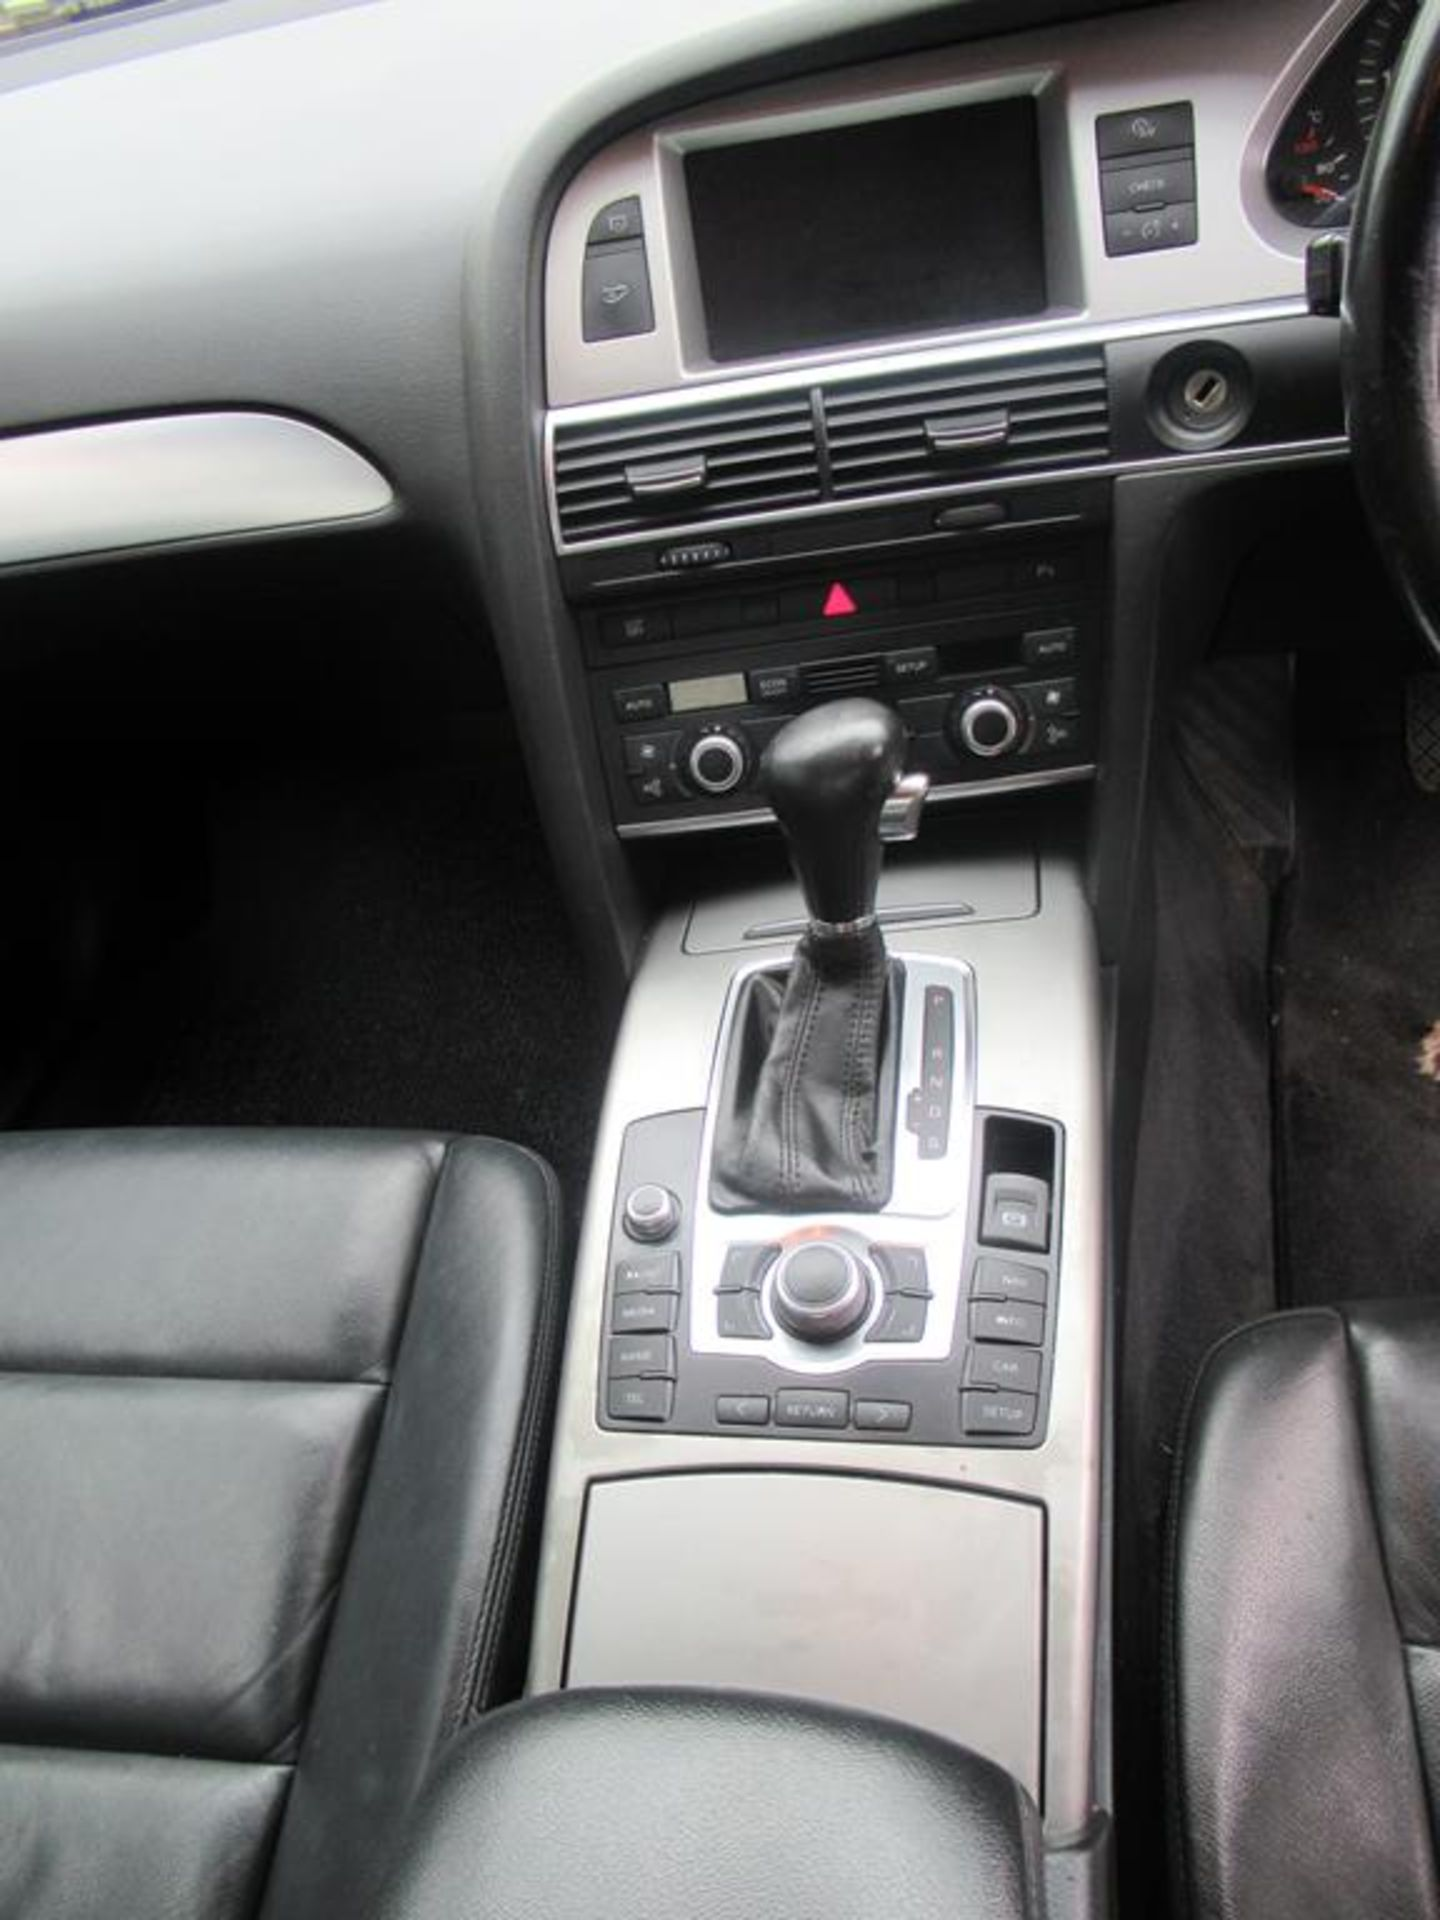 Audi A6 2.7TDI automatic with SatNav and bluetooth - Image 12 of 16